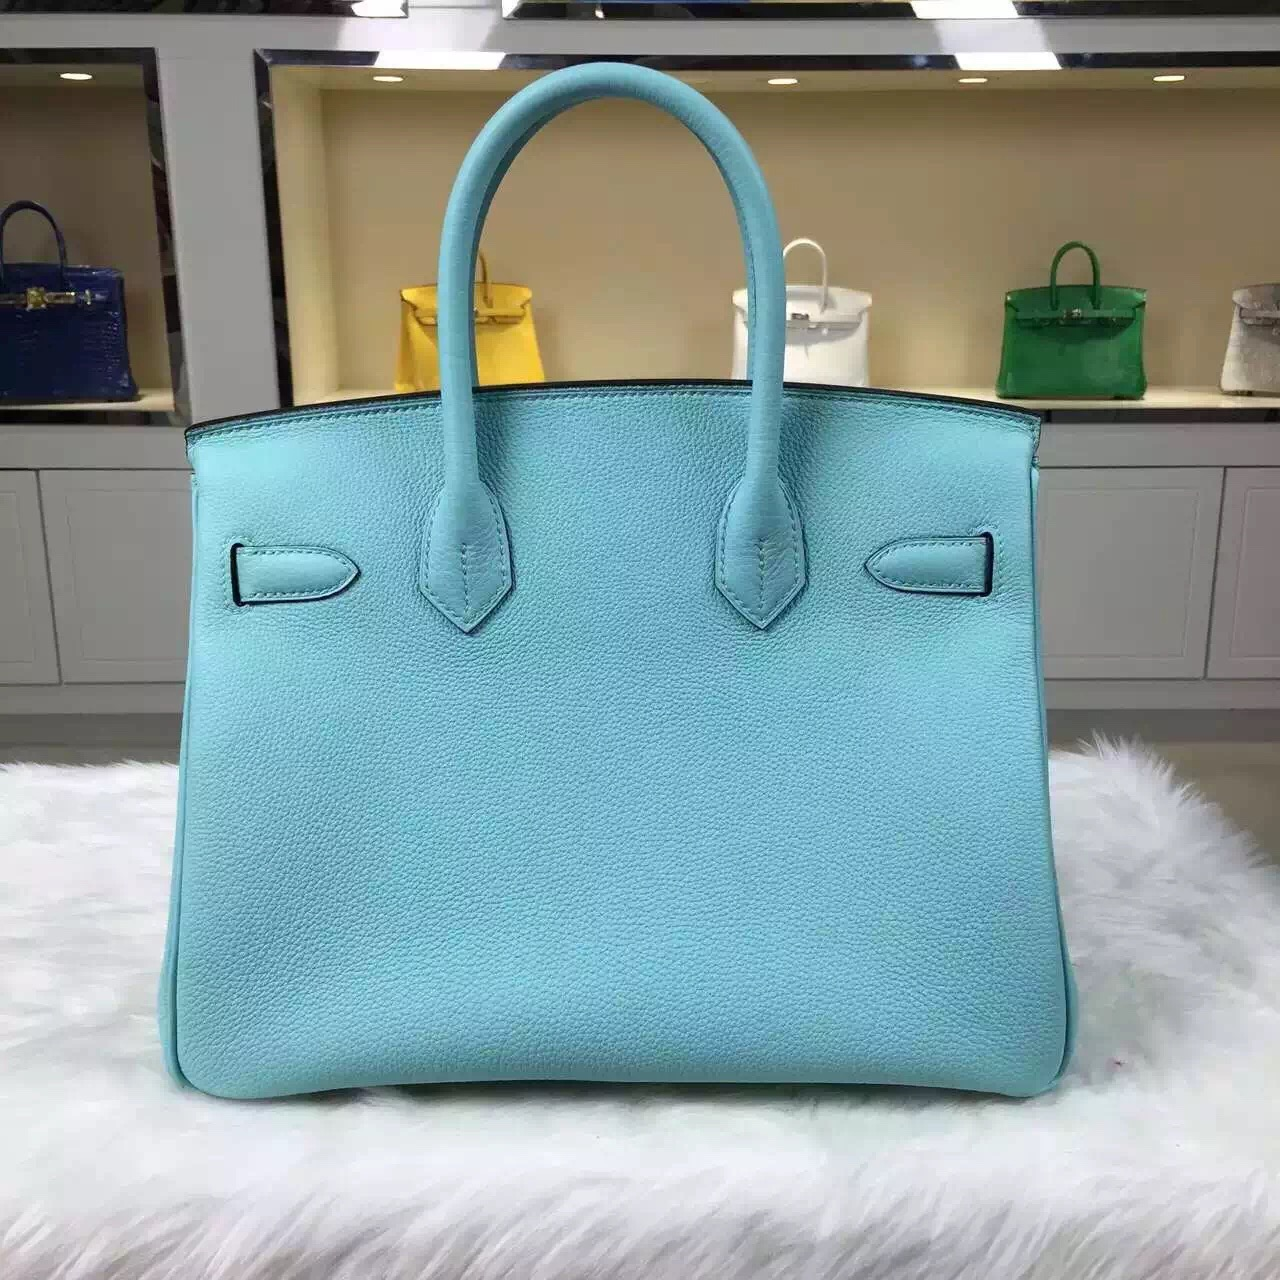 Luxury Hermes 7B Turquoise Blue Birkin 30CM Togo Leather Gold Hardware